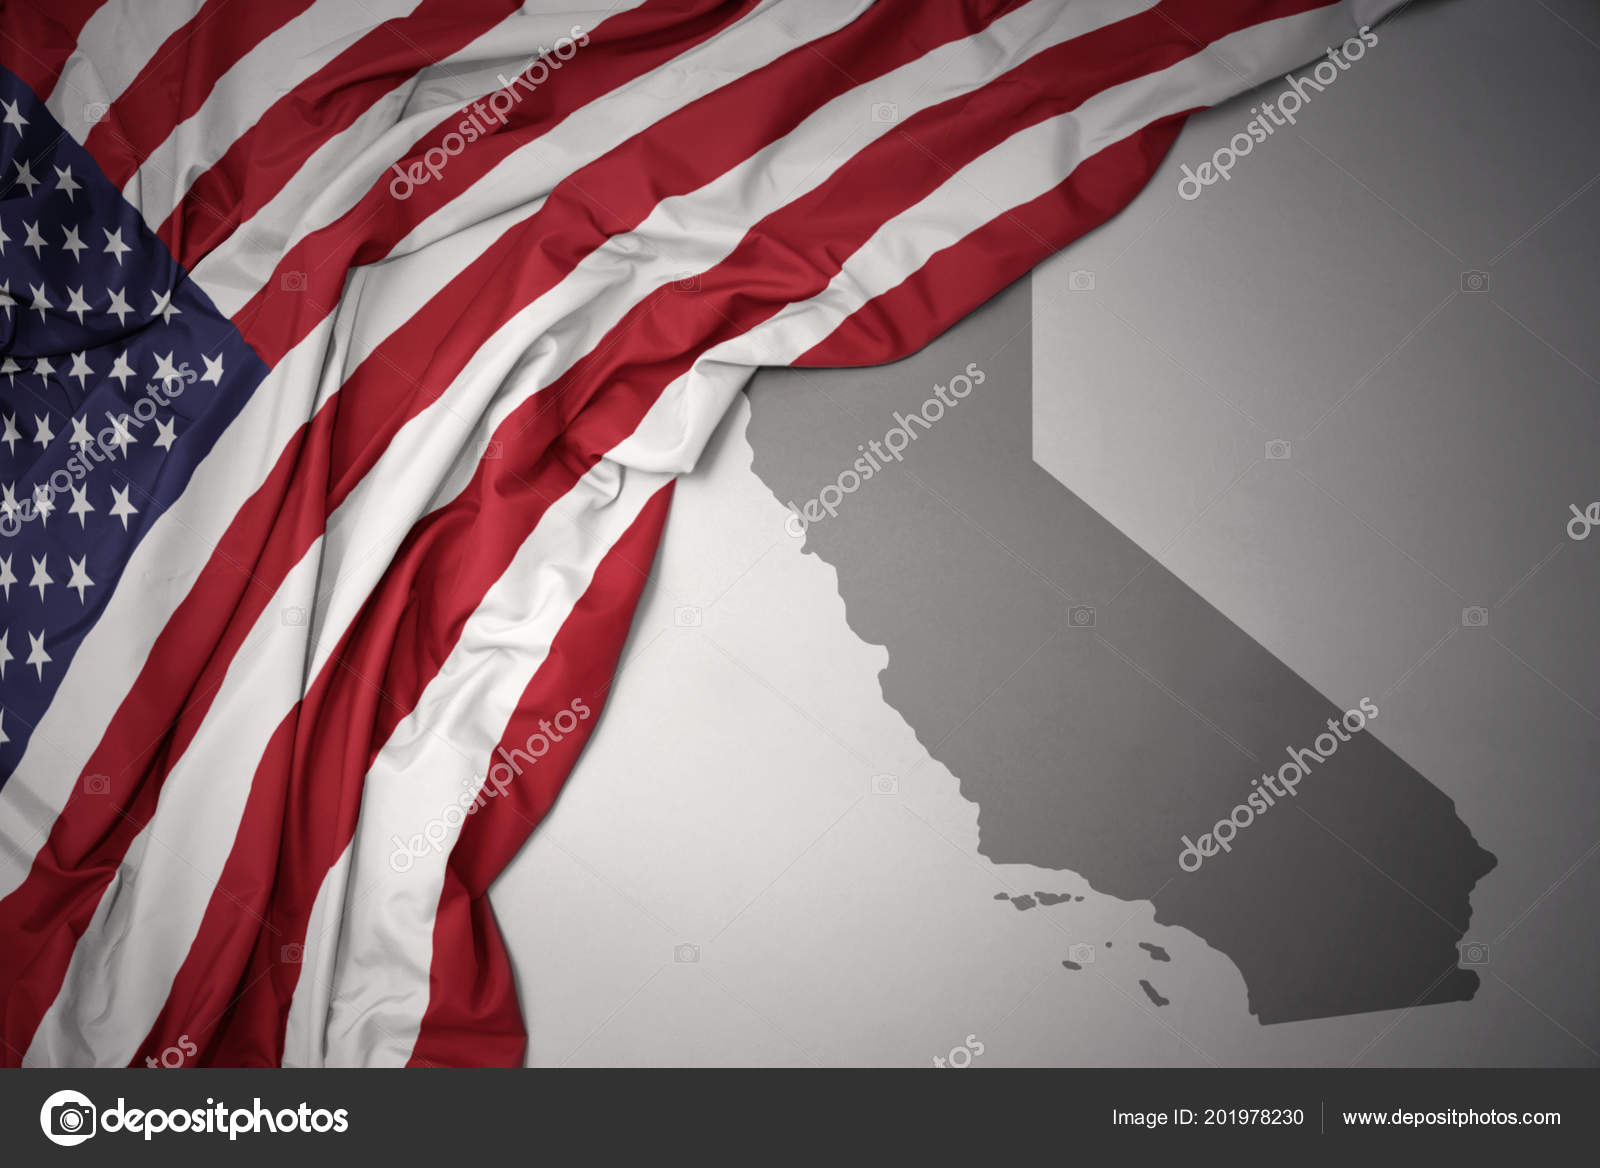 Waving Colorful National Flag United States America Gray ... on gray italy map, gray russia map, gray global map, gray poland map, gray world map, gray europe map, gray belgium map, gray puerto rico map, gray canada map, gray indonesia map, gray mexico map, gray asia map,